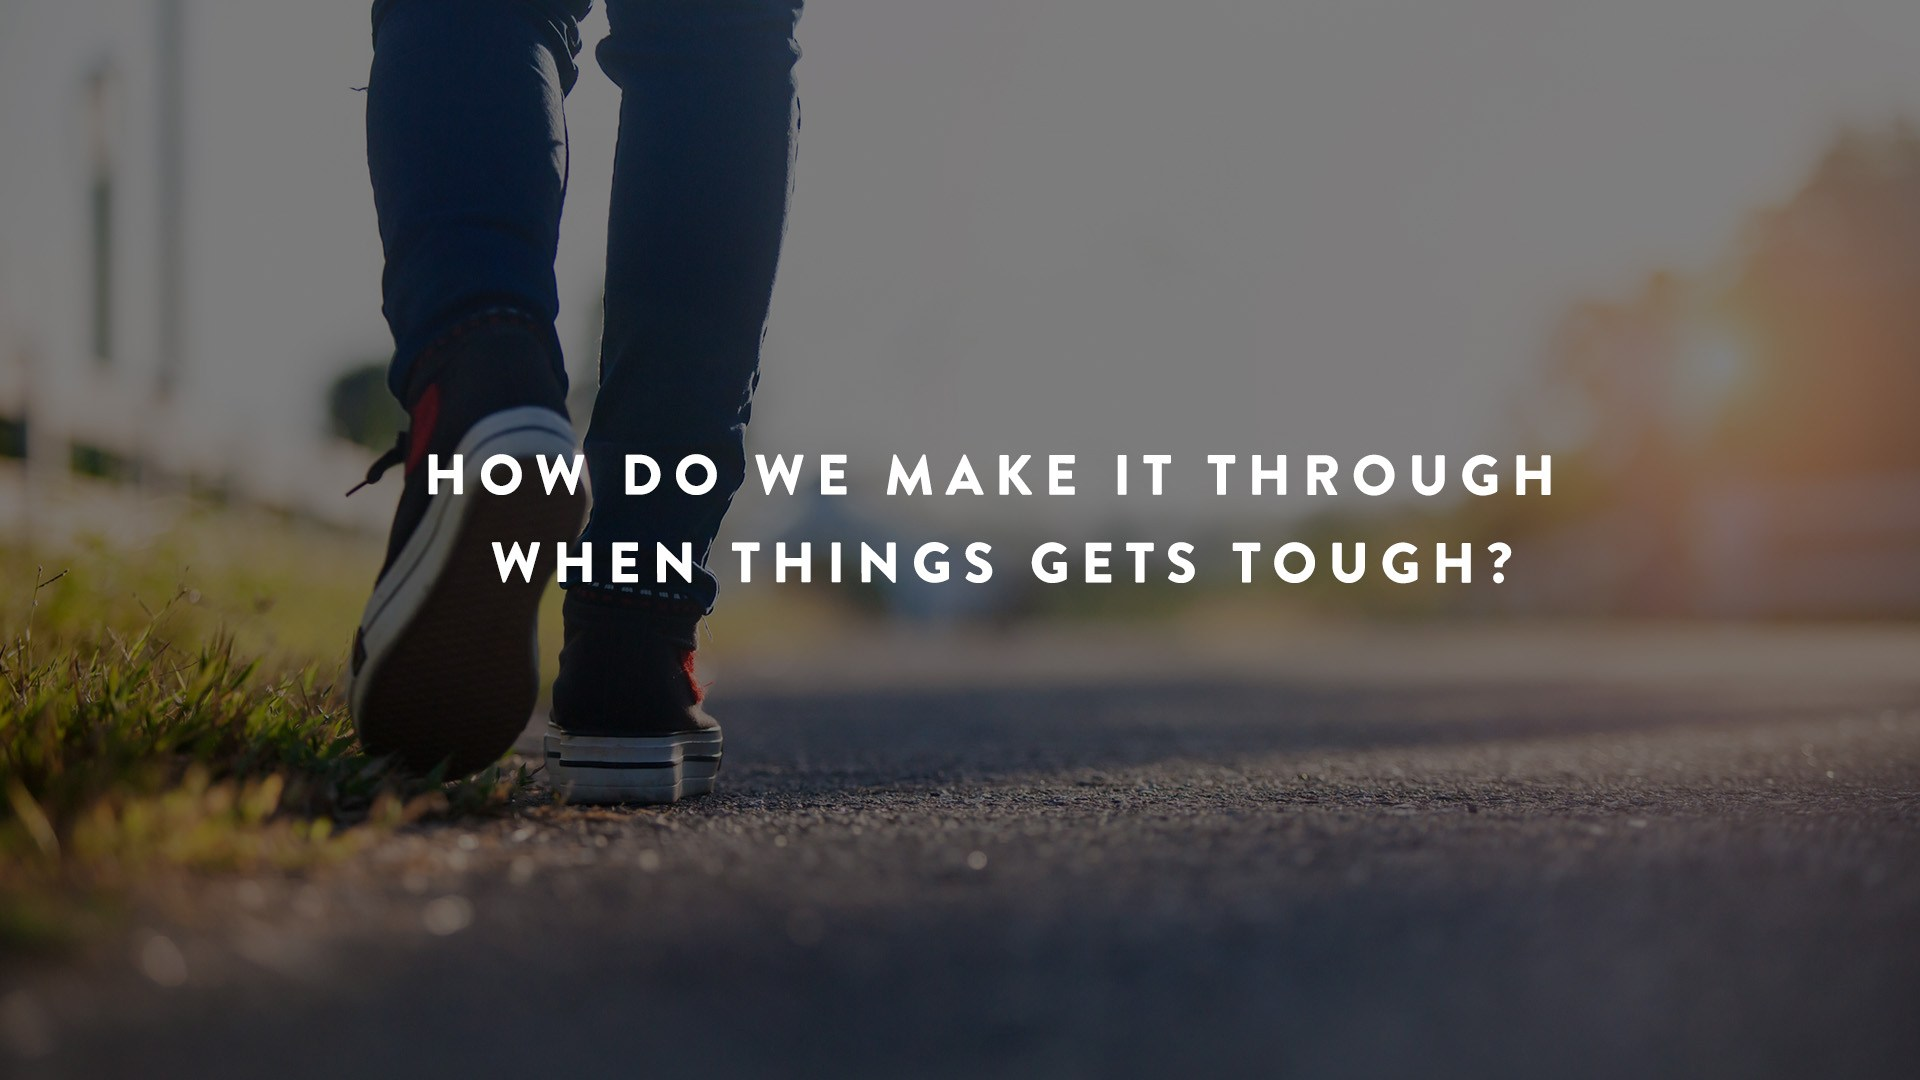 How Do We Make It Through When Things Get Tough? : Determination - Parent Cue